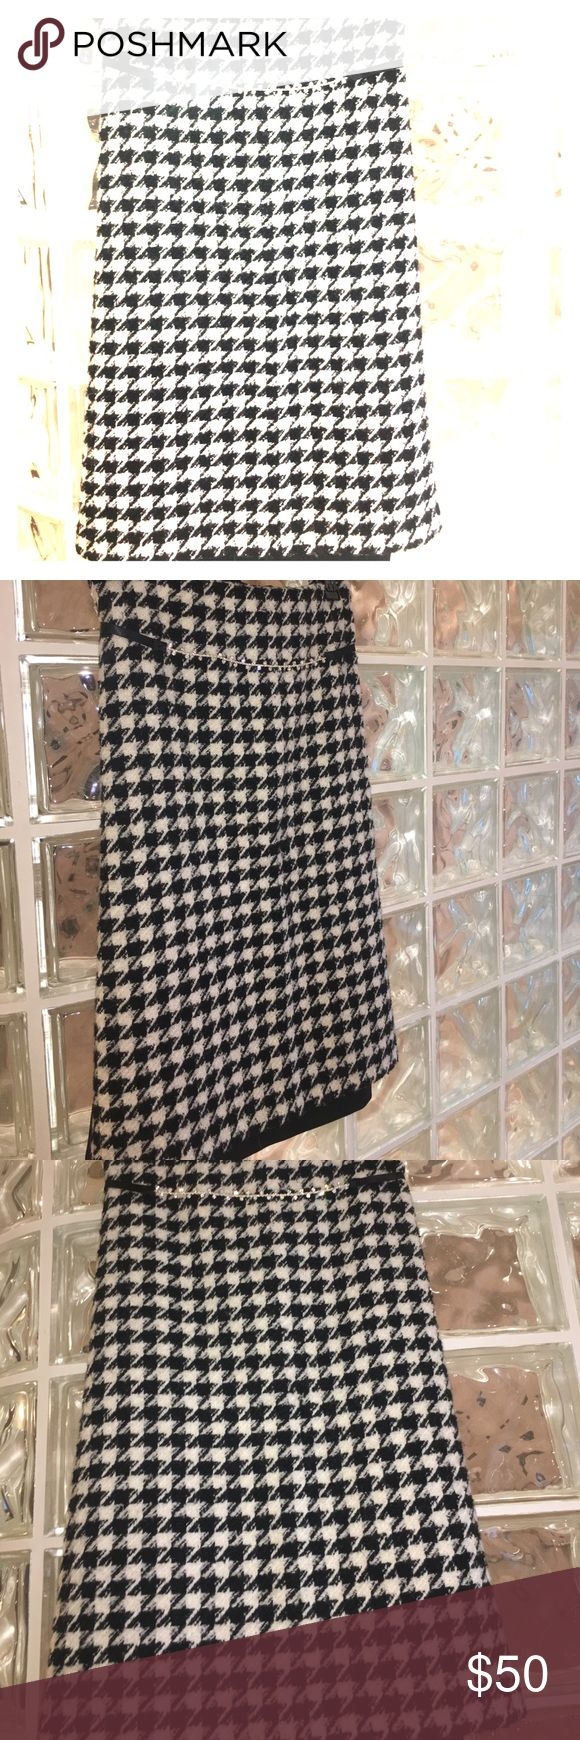 Wool Houndstooth Midi Skirt - NWOT - Eloquii Stay warm and in style with this wool, midi, houndstooth skirt. Houndstooth on the front and Scuba material in black on the back which means your backside is going to look goood!!! Pair with some black ankle booties or talk black boots and you'll scream sophistication without saying a word. Eloquii Skirts Midi